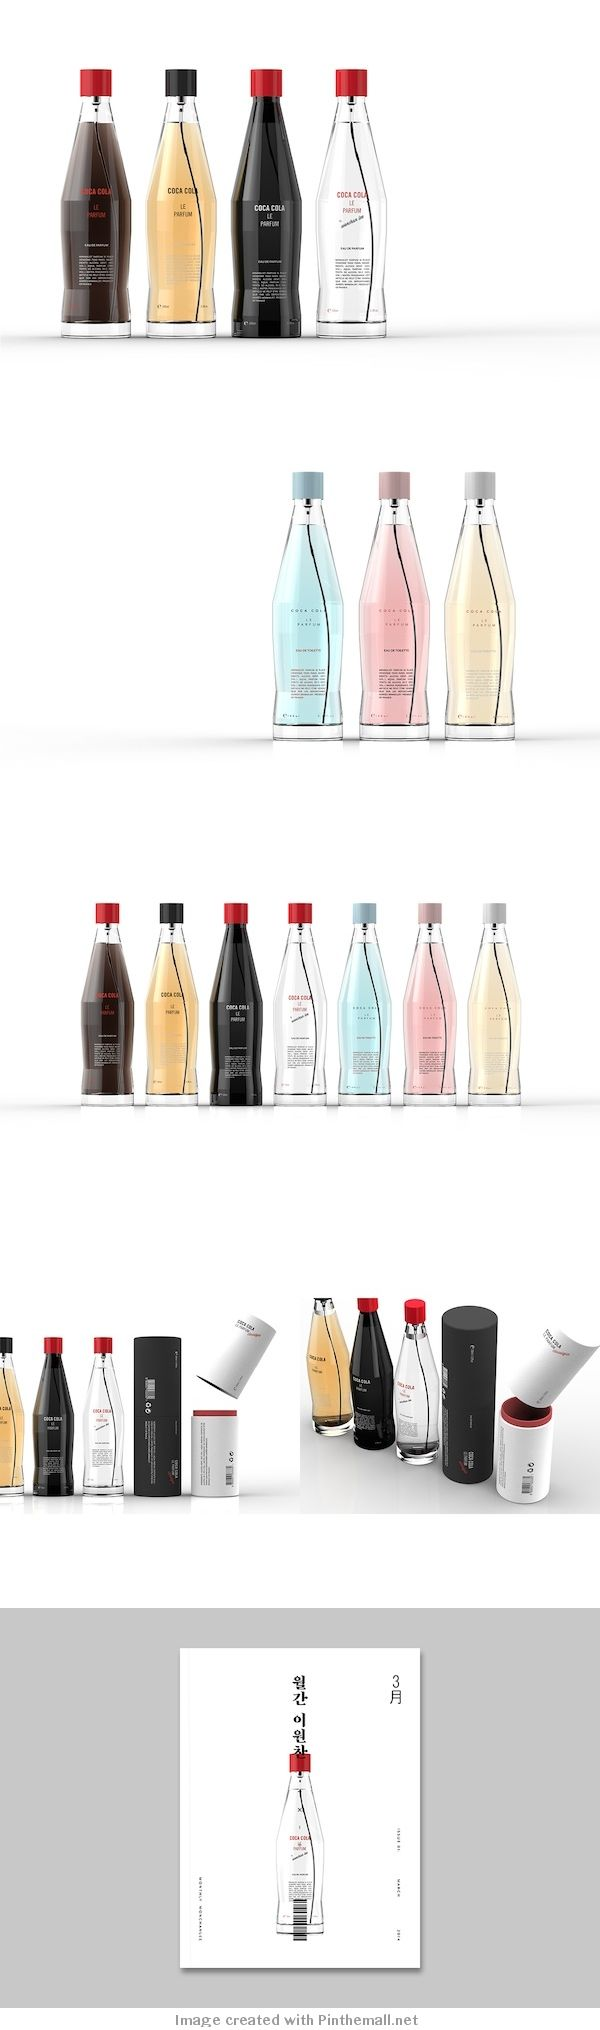 coca cola s line of business 06062018  business companies & markets economy  coca-cola clear is the latest drink to join japan's line-up of  coca-cola reportedly took a year to develop.